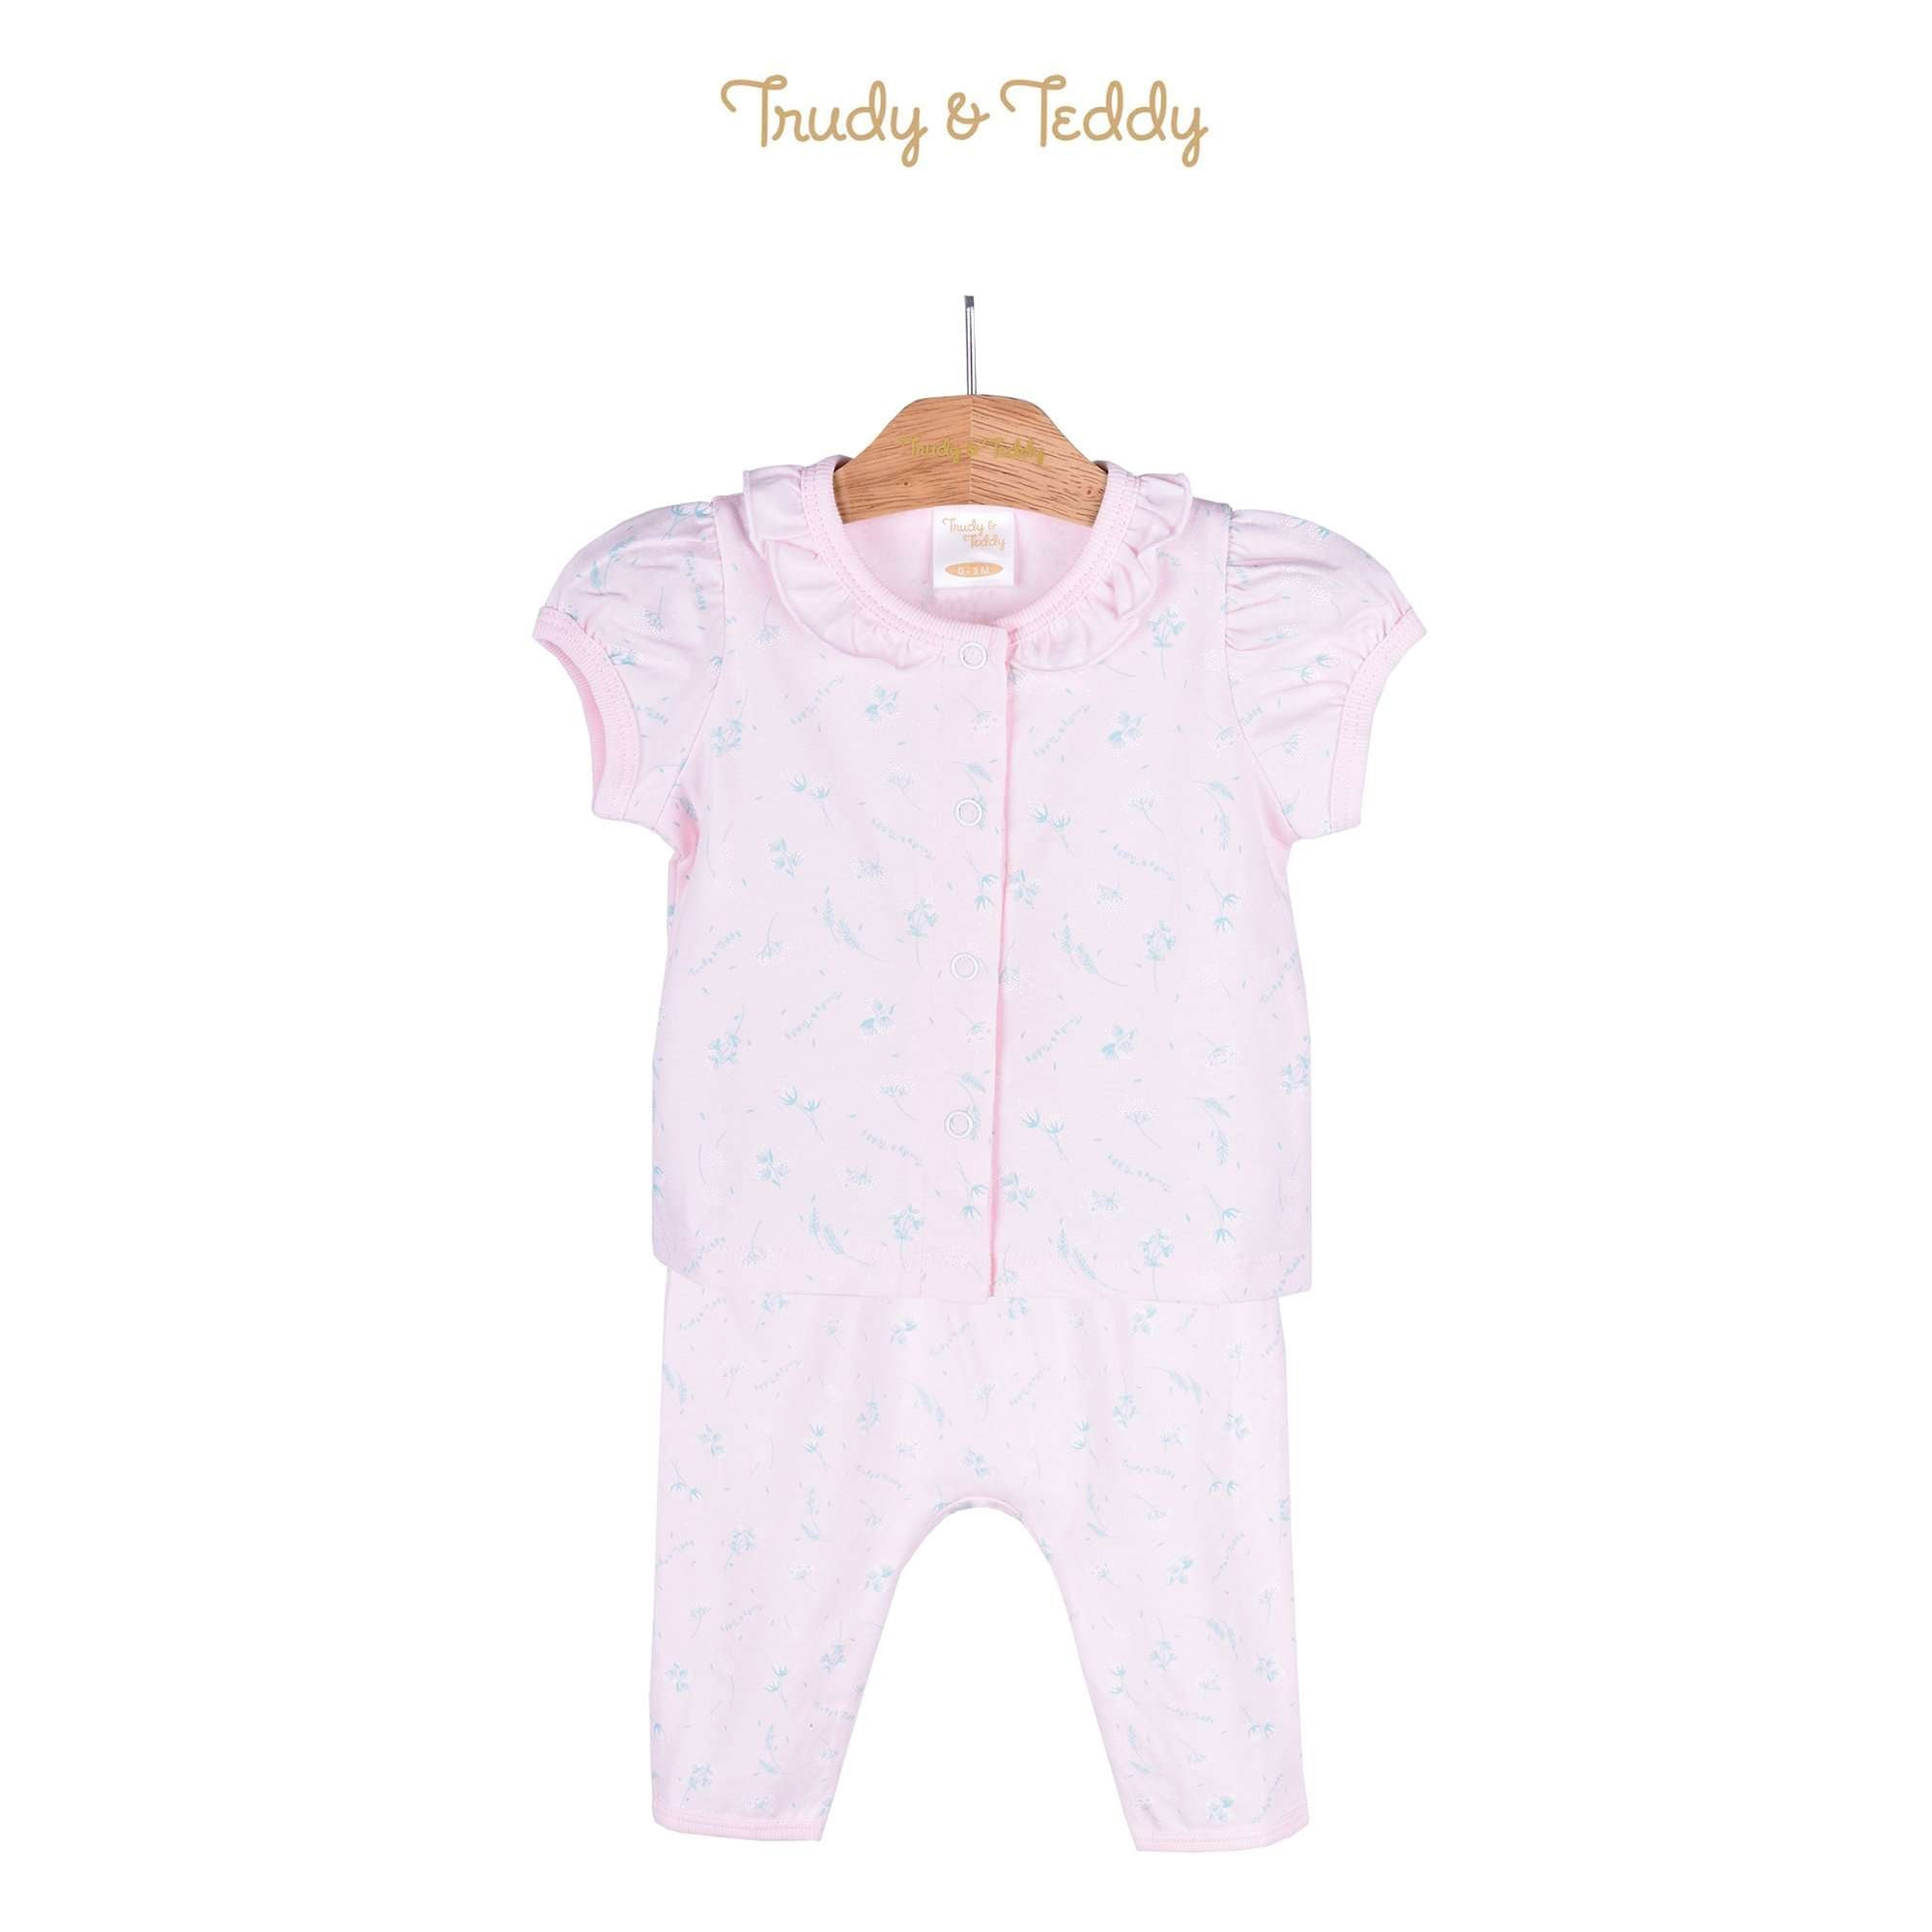 Trudy & Teddy Baby Girl Short Sleeve Long Pants Suit 820032-421 : Buy Trudy & Teddy online at CMG.MY